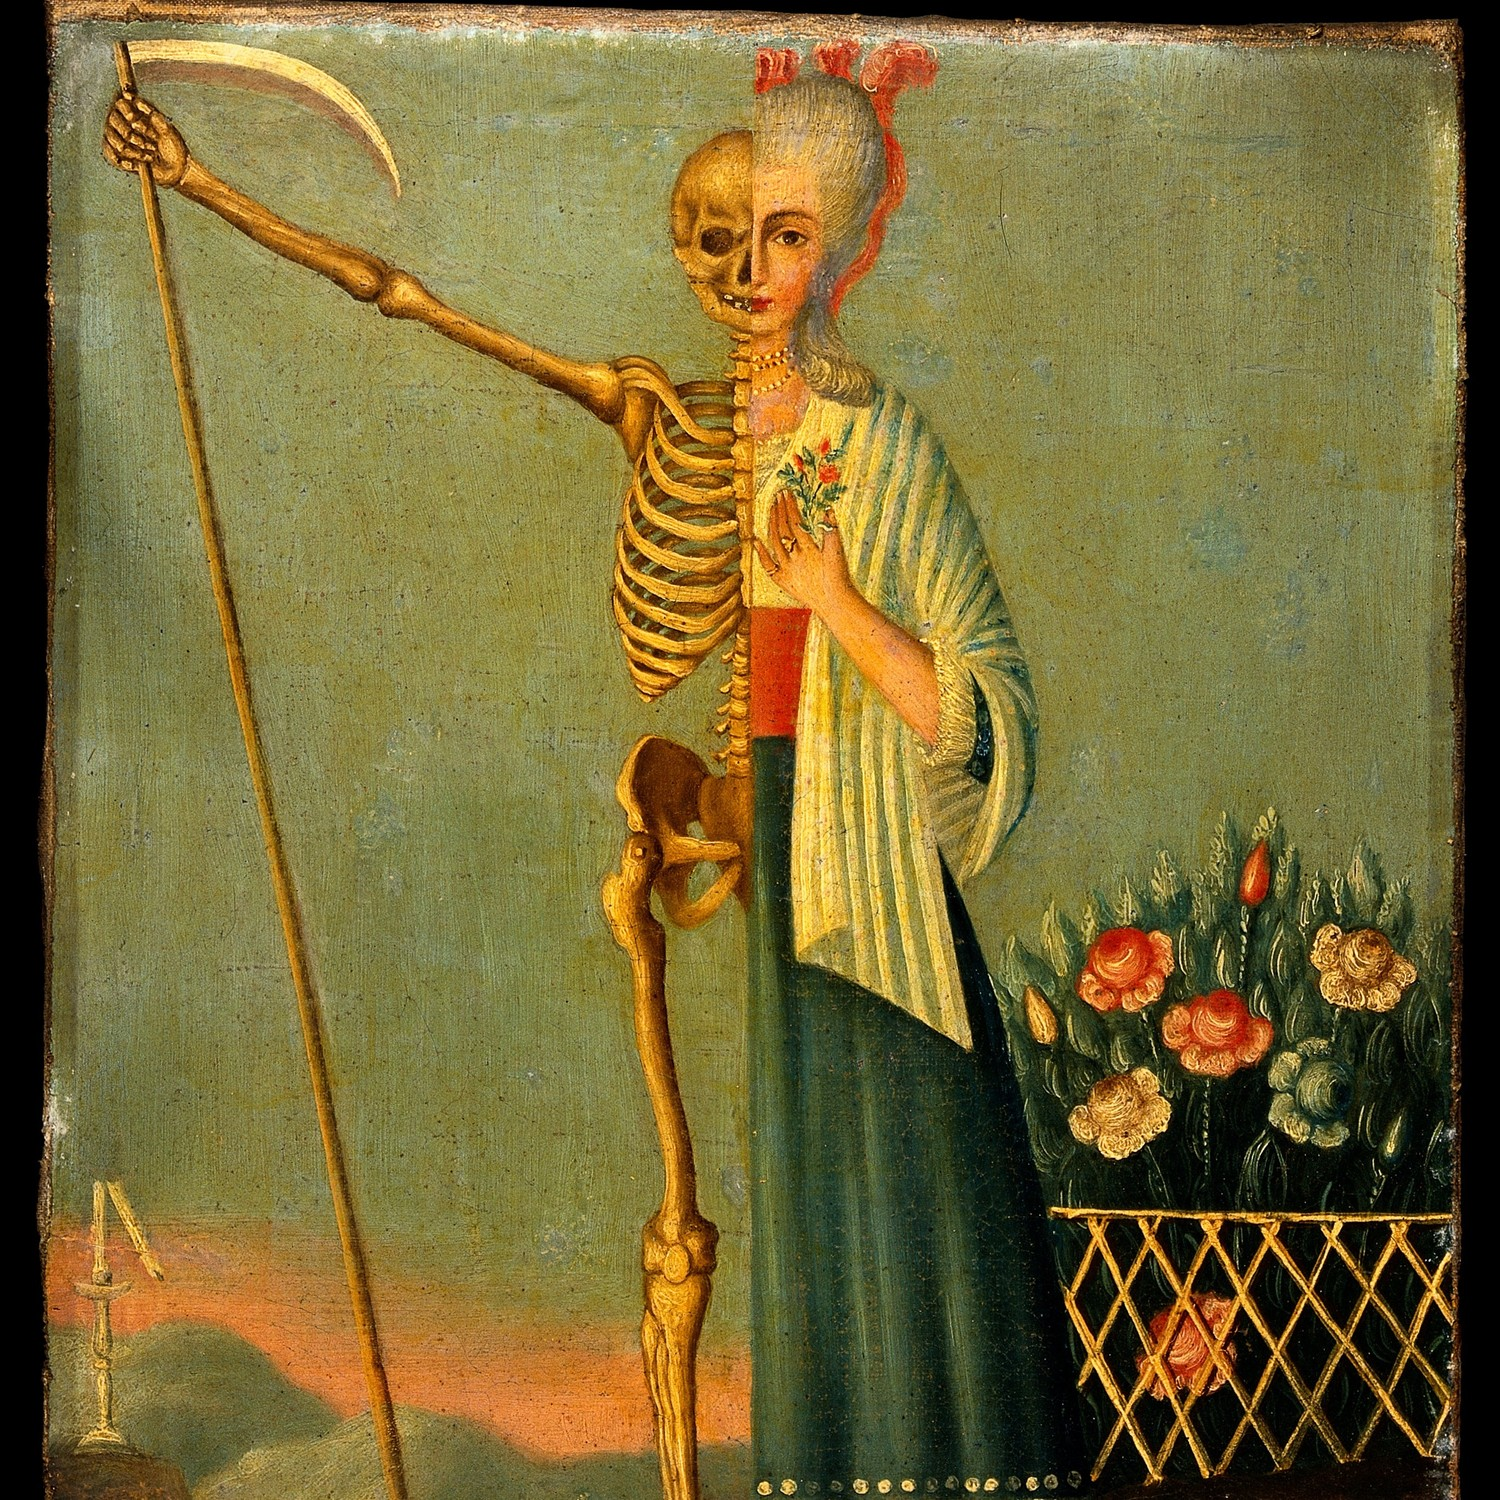 Life and death. Oil painting © Wellcome Collection/CC BY 4.0